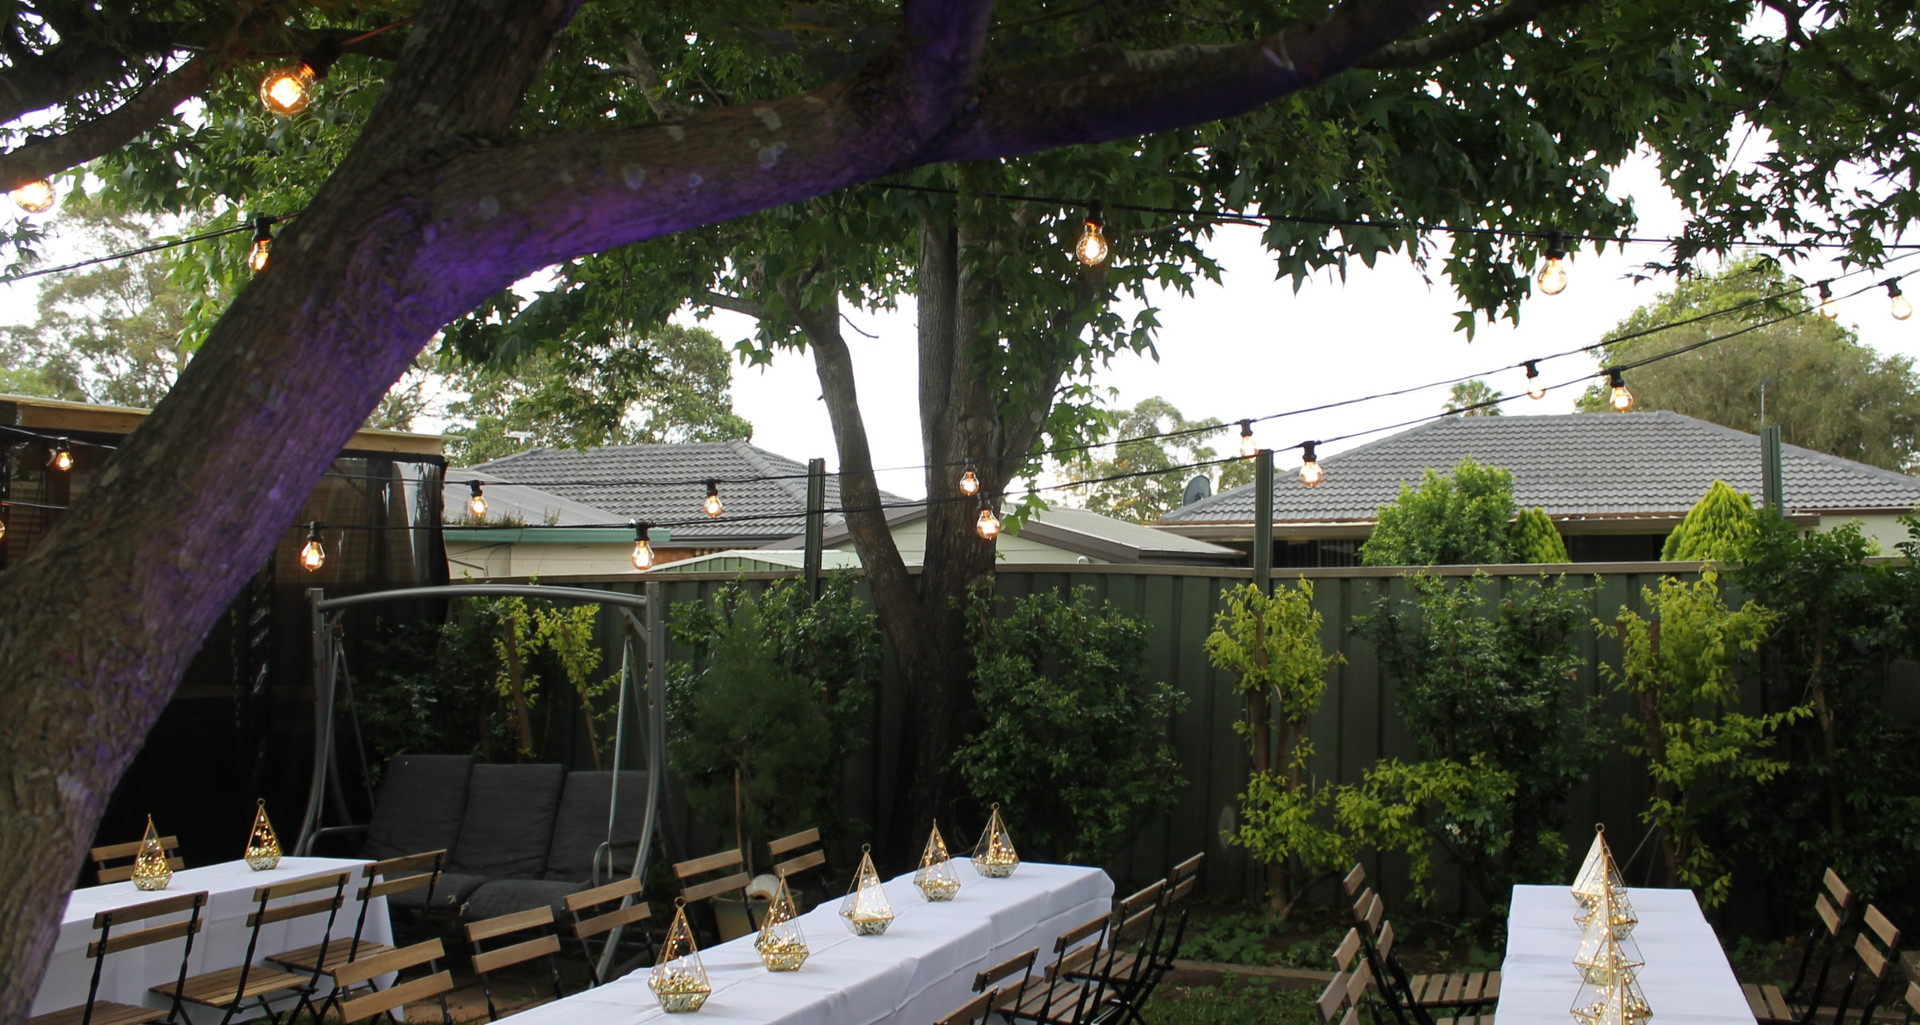 Outdoor garden party